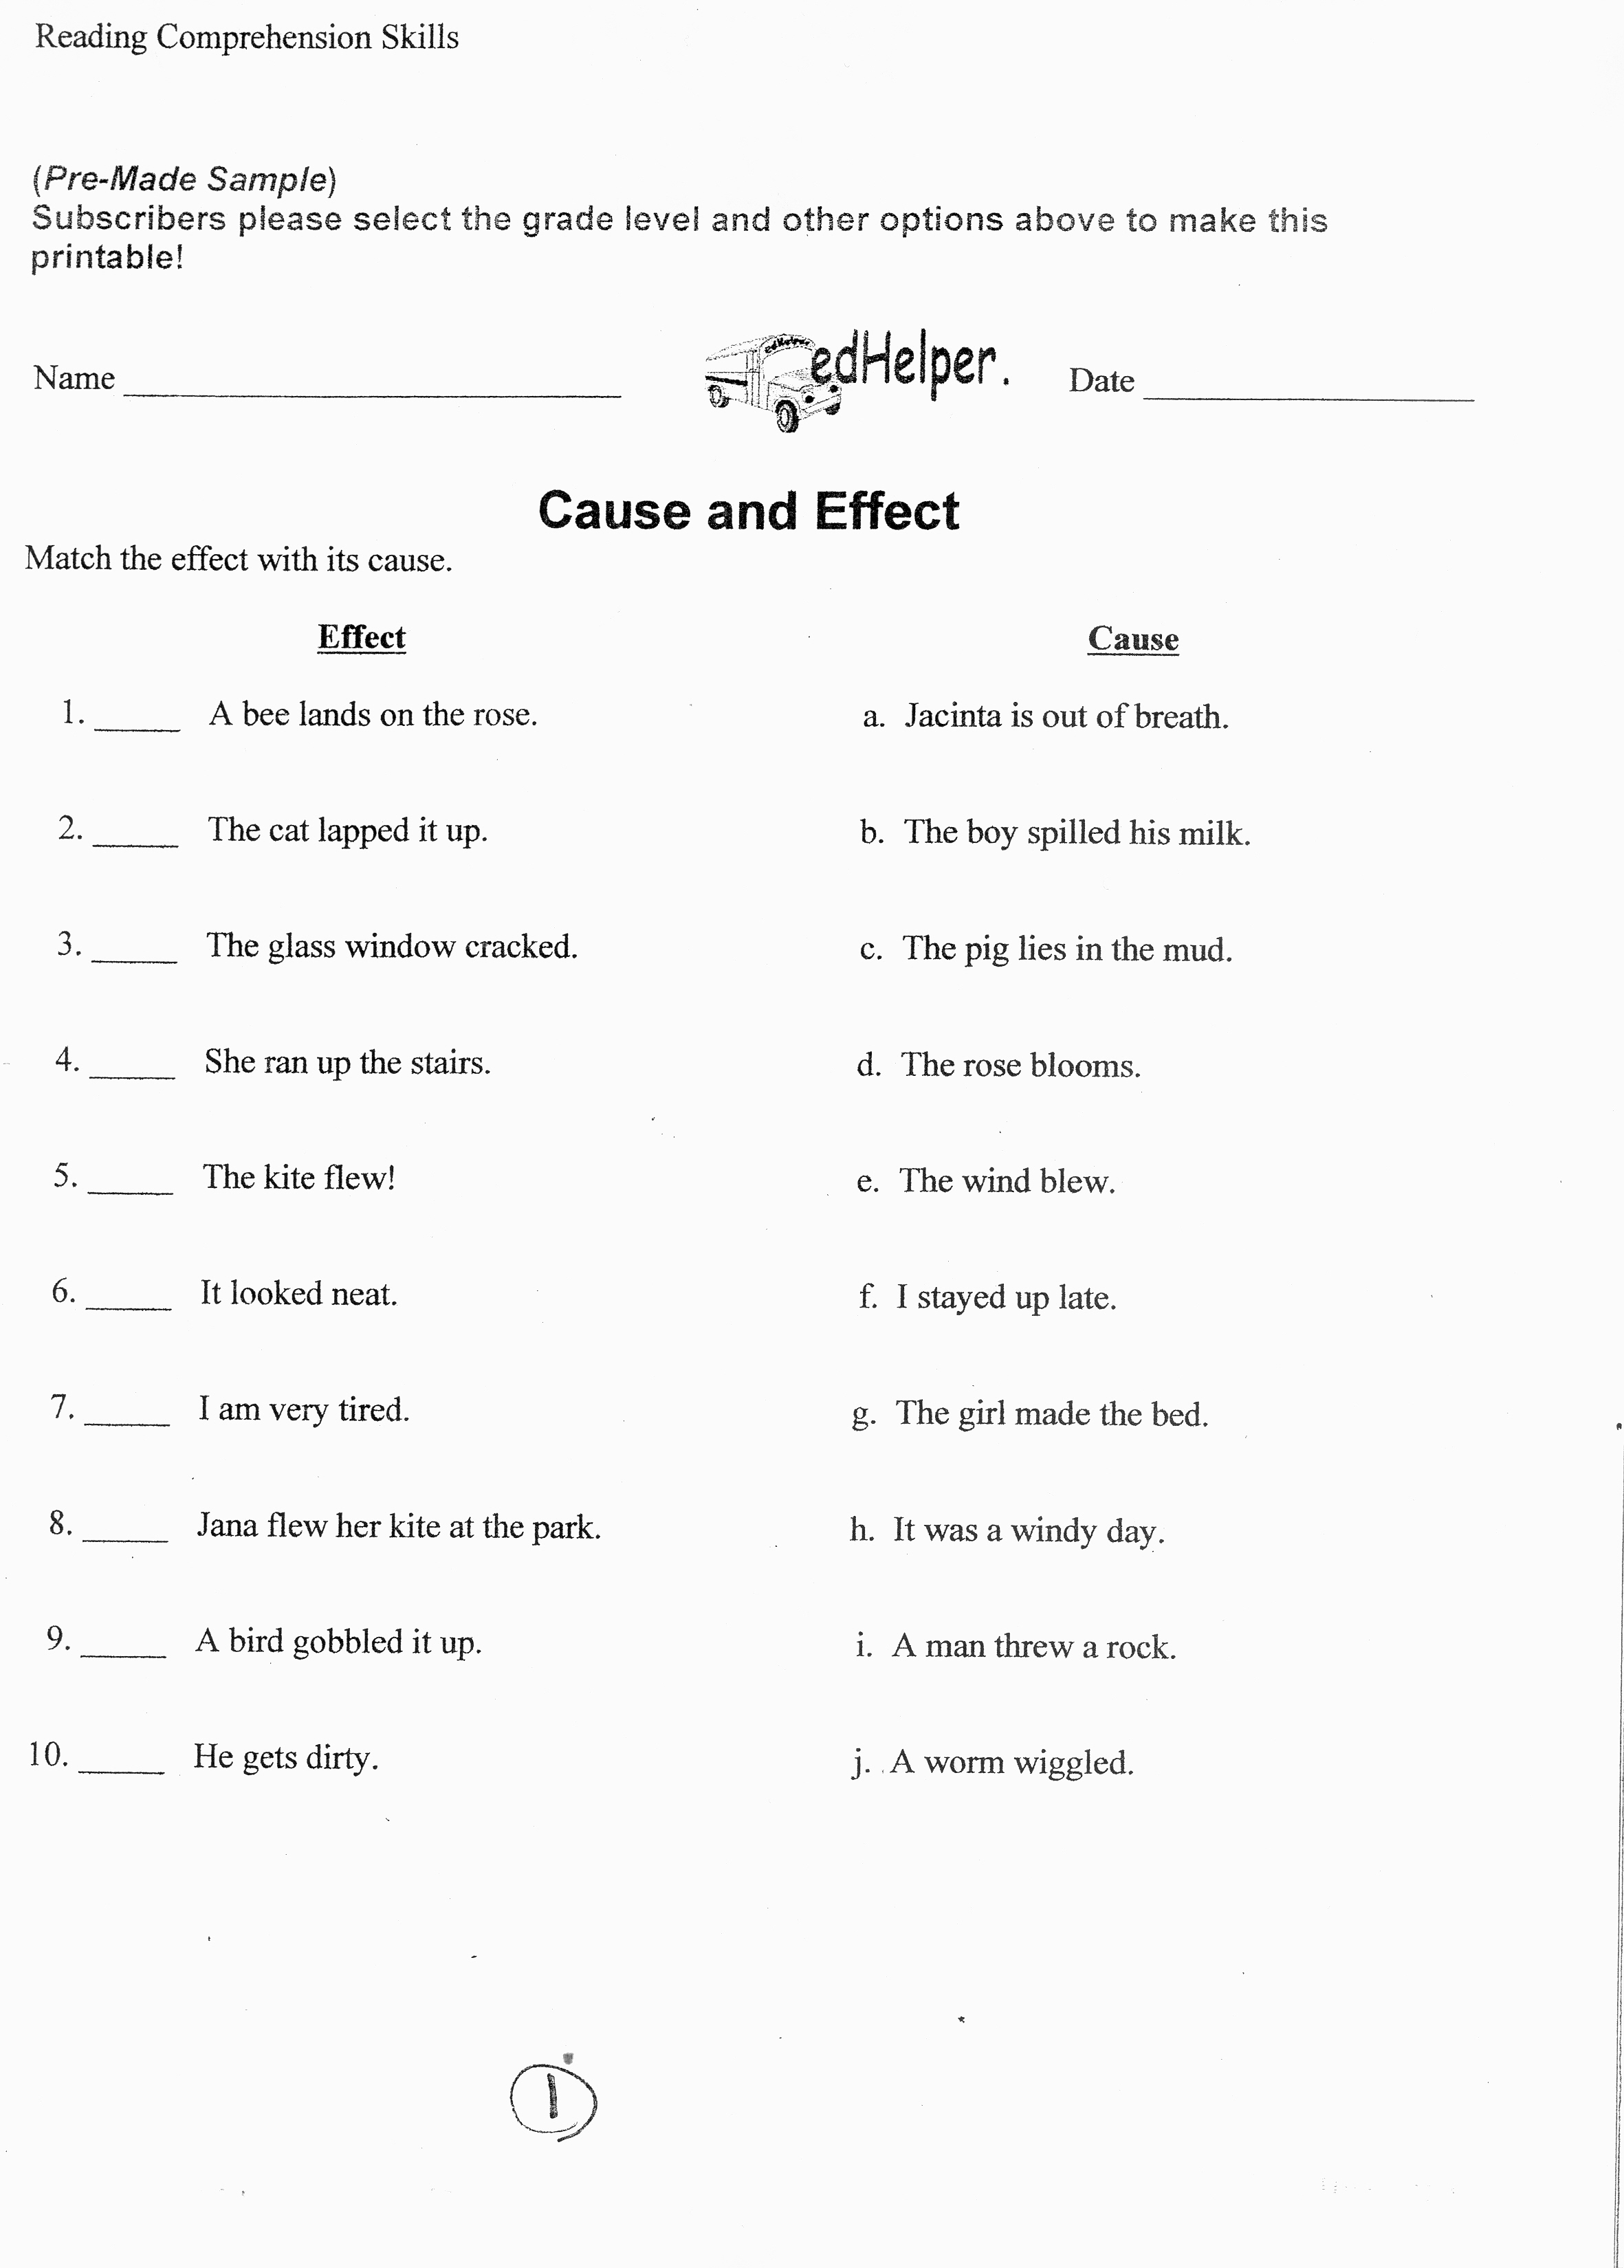 Worksheets 8th Grade Language Arts Worksheets 6th grade lessons middle school language arts help cause and effect worksheet